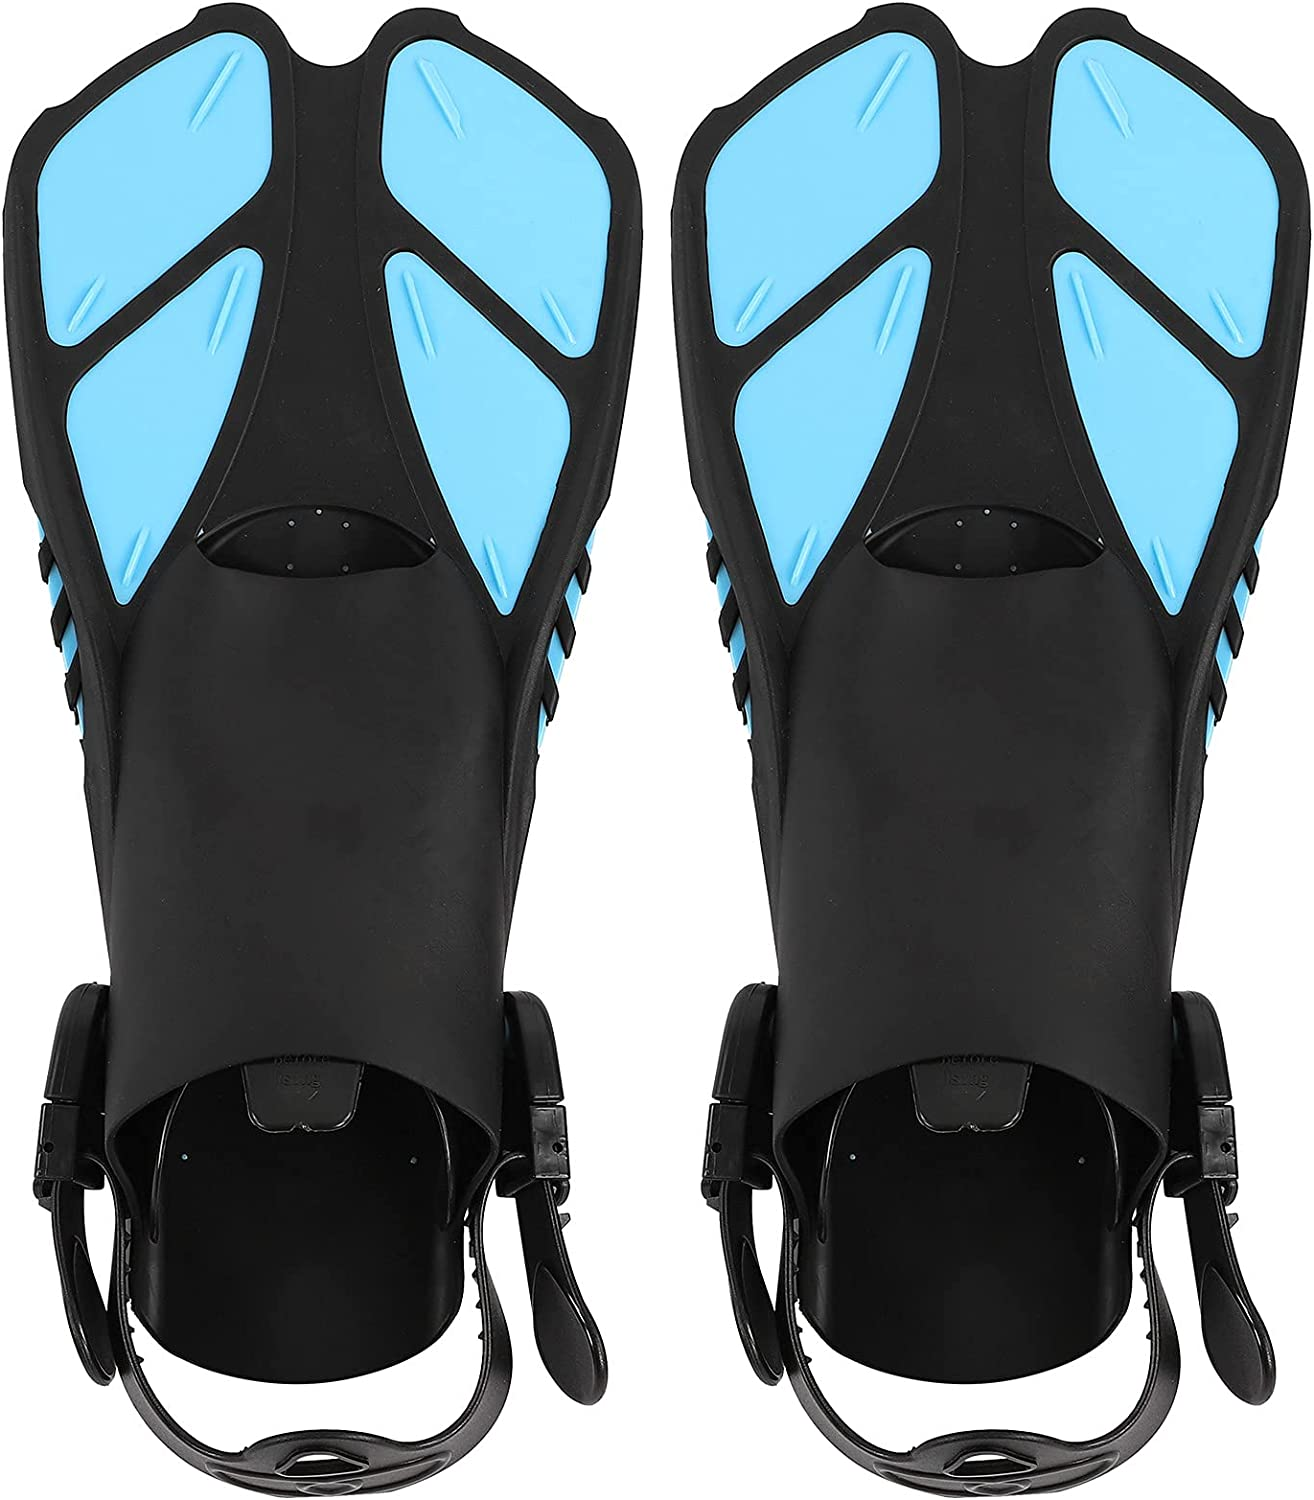 Swimming Fins 1 Pair Adjustable Diving L Soft Opening large release sale Outlet SALE TPR Open Heel